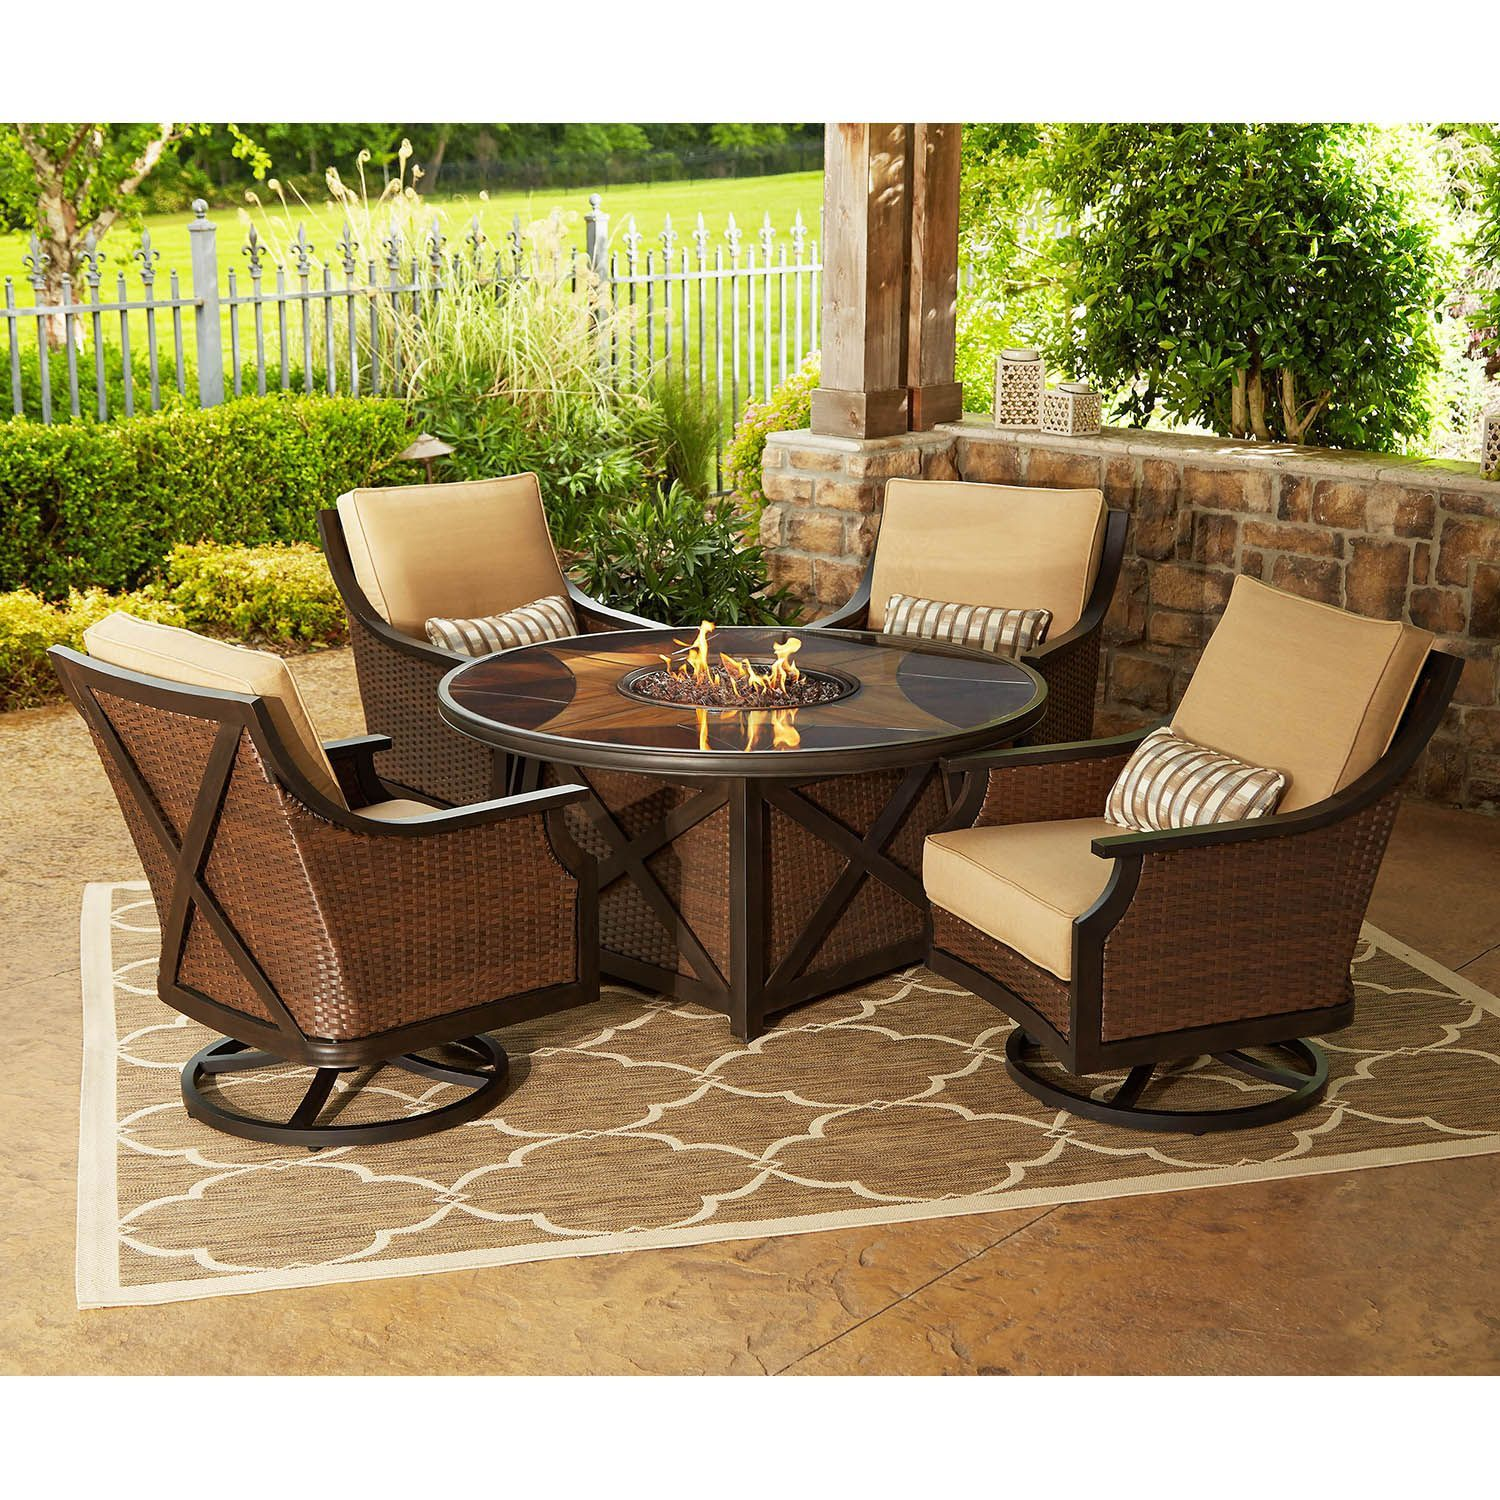 Member S Mark Berkeley 5 Piece Fire Chat Set Outdoor Furniture Sets Outdoor Seating Set White Furniture Living Room